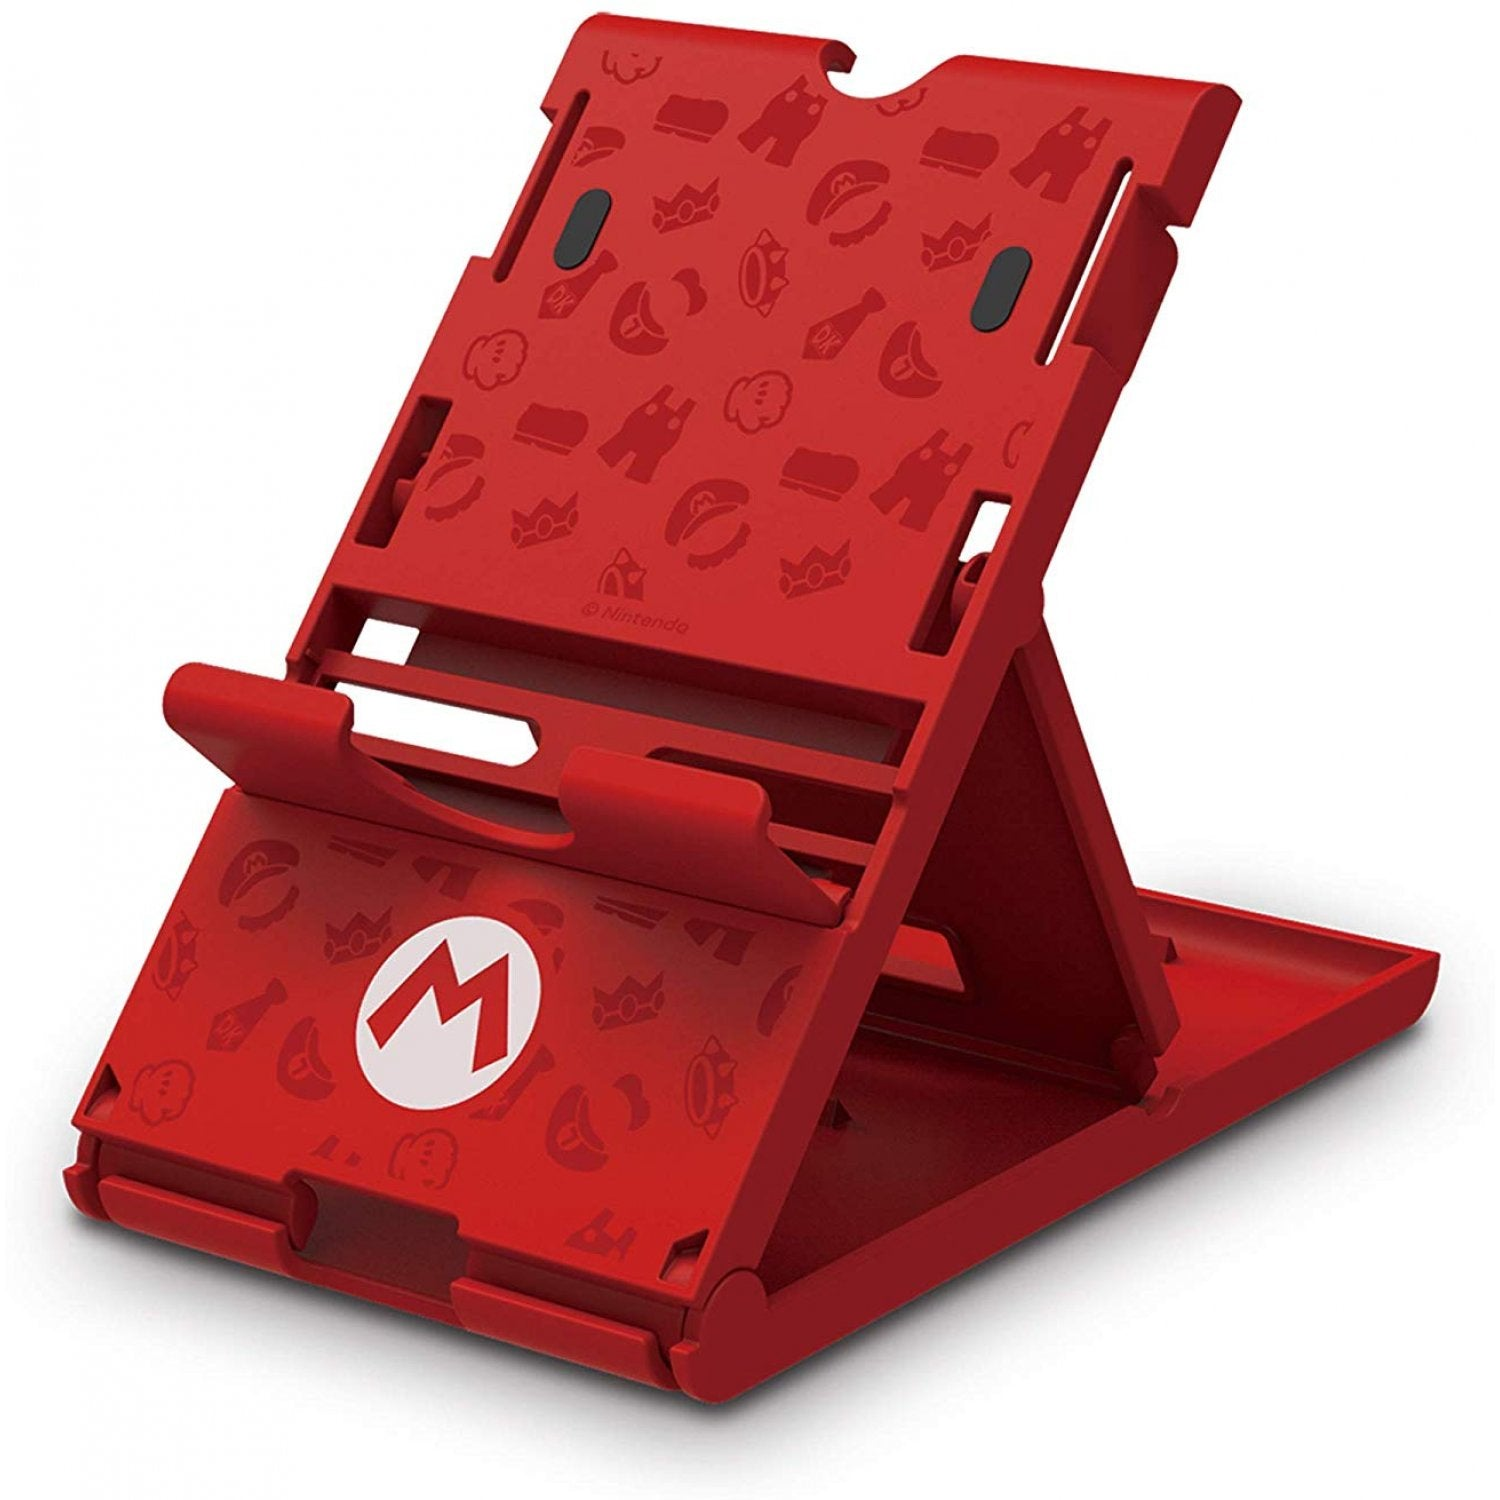 NSW HORI Playstand Super Mario (NSW-084)